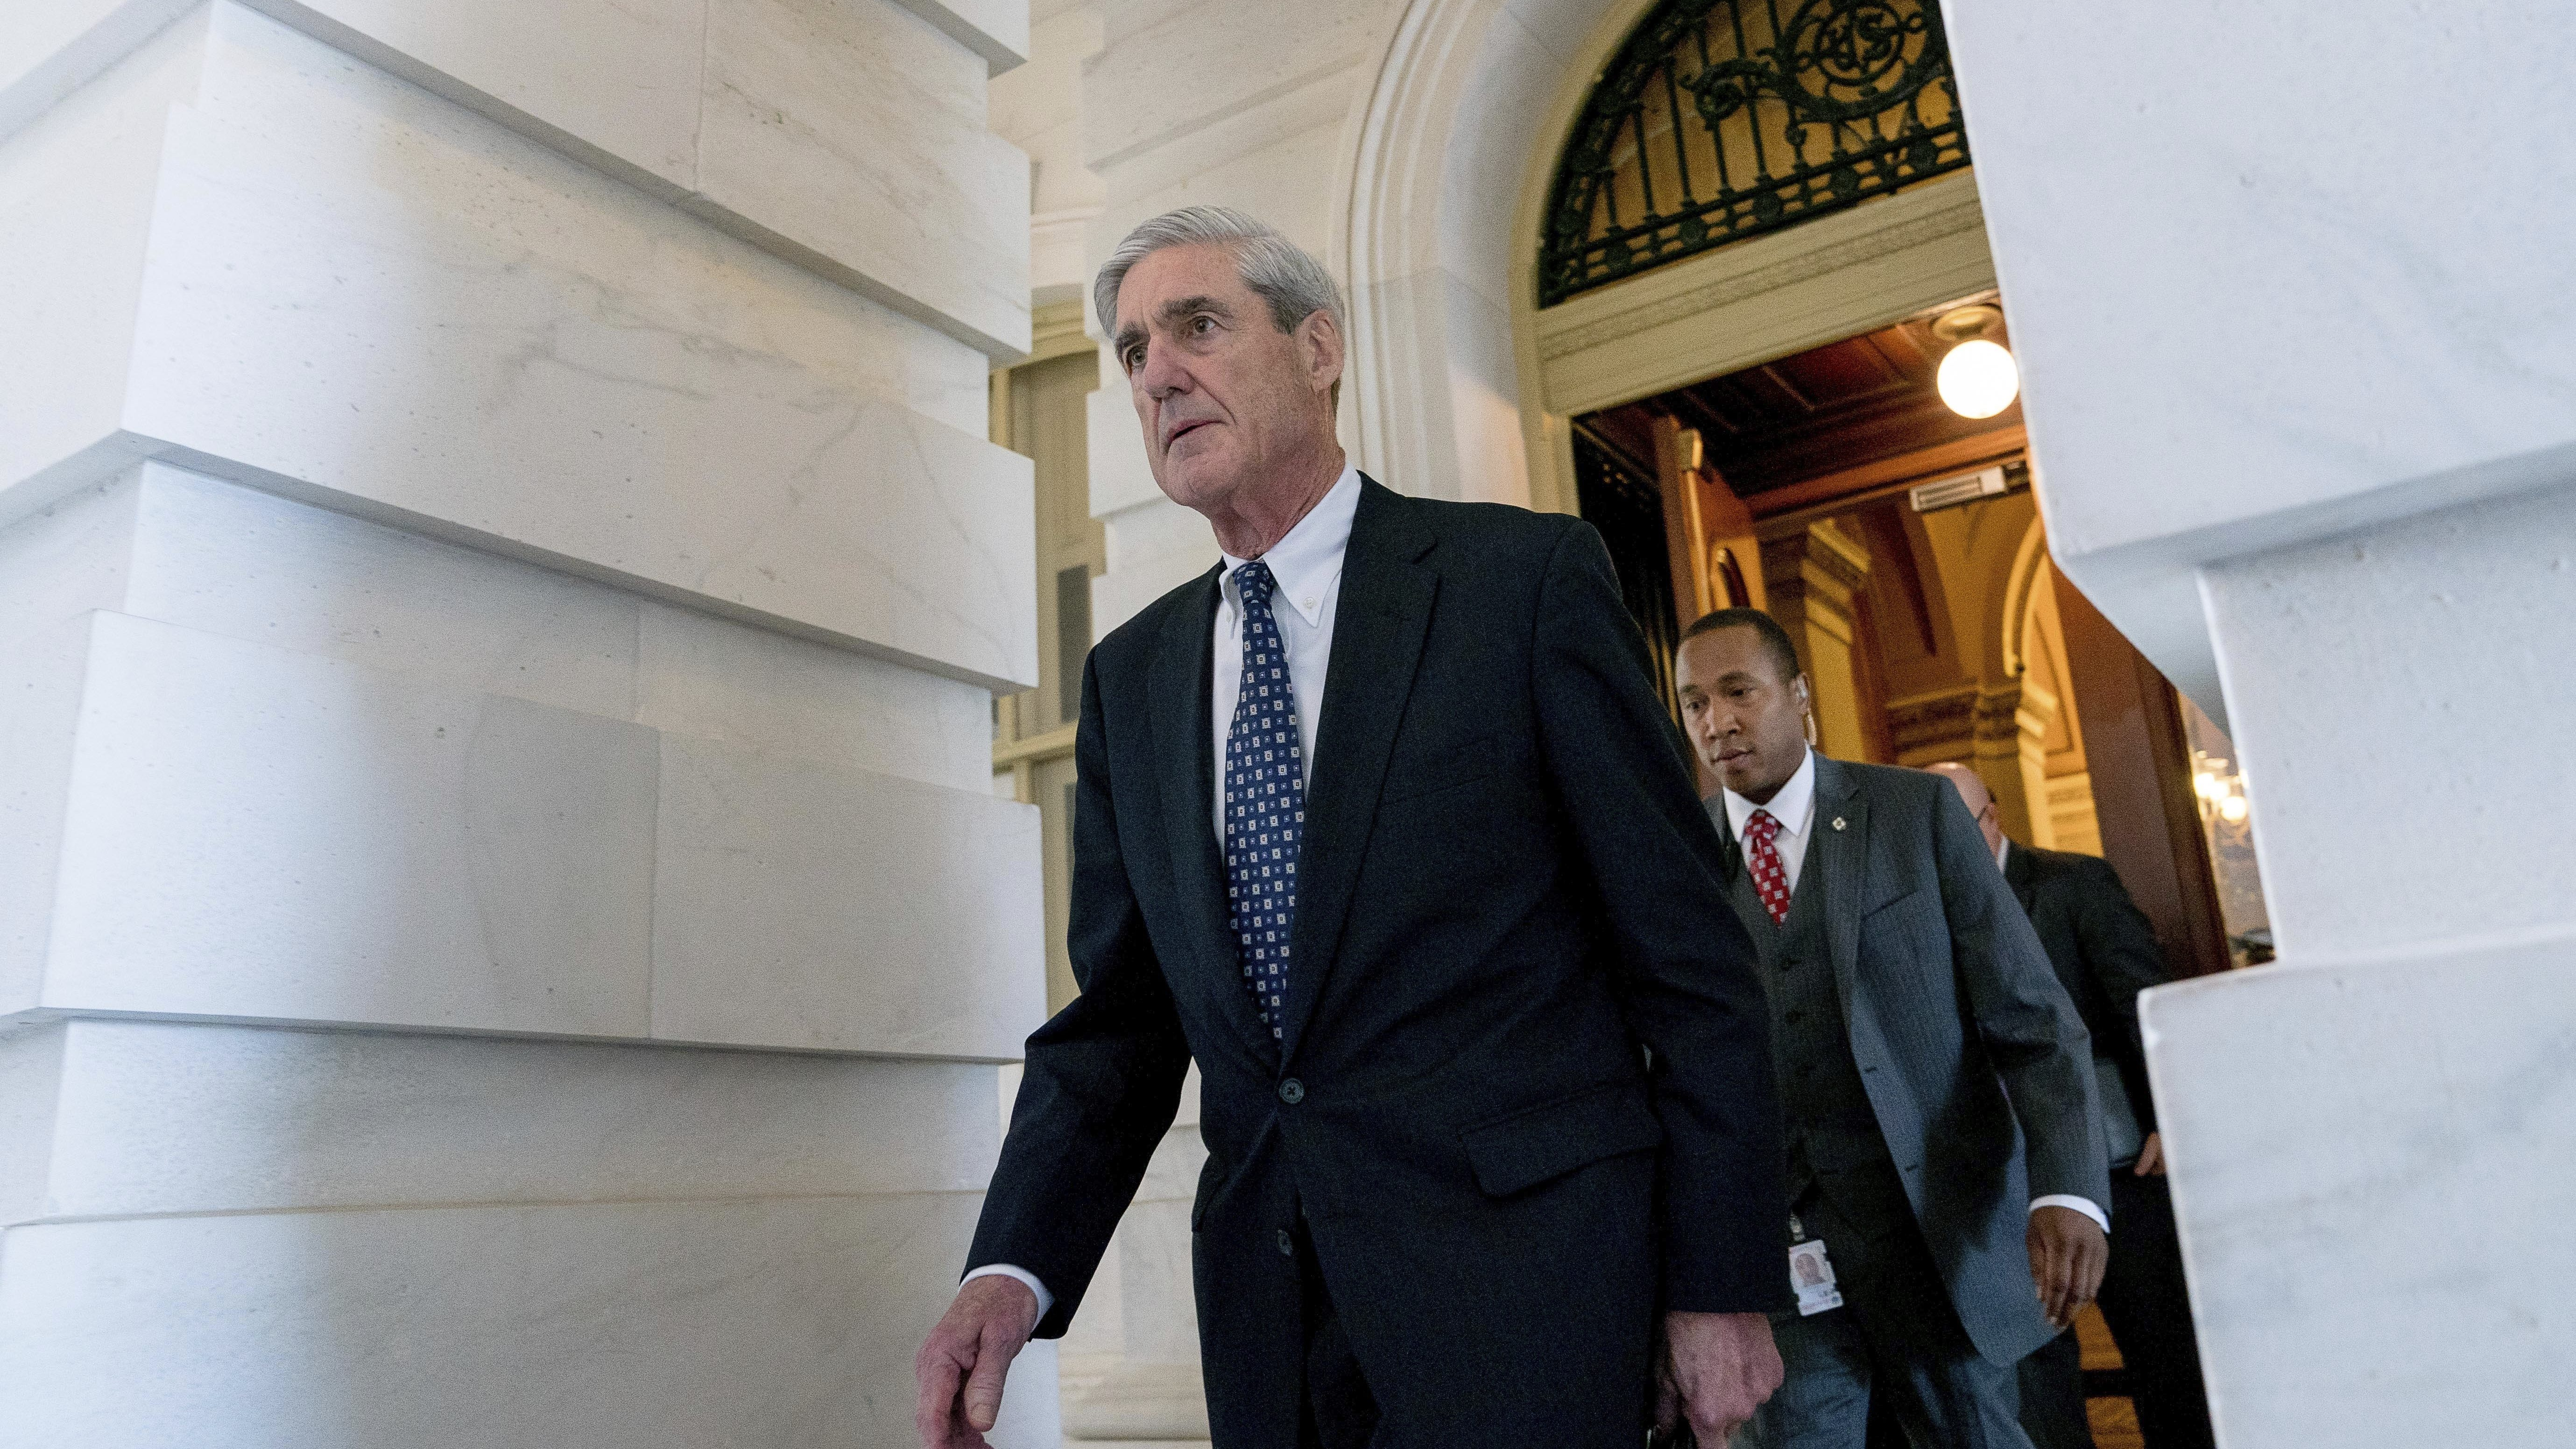 In this June 21, 2017 photo, Special Counsel Robert Mueller departs Capitol Hill following a closed door meeting in Washington. Mueller's team of investigators is in possession of a letter drafted by President Donald Trump and an aide, but never sent, that lays out a rationale for firing FBI Director James Comey, according to a person familiar with the investigation.  (AP Photo/Andrew Harnik)